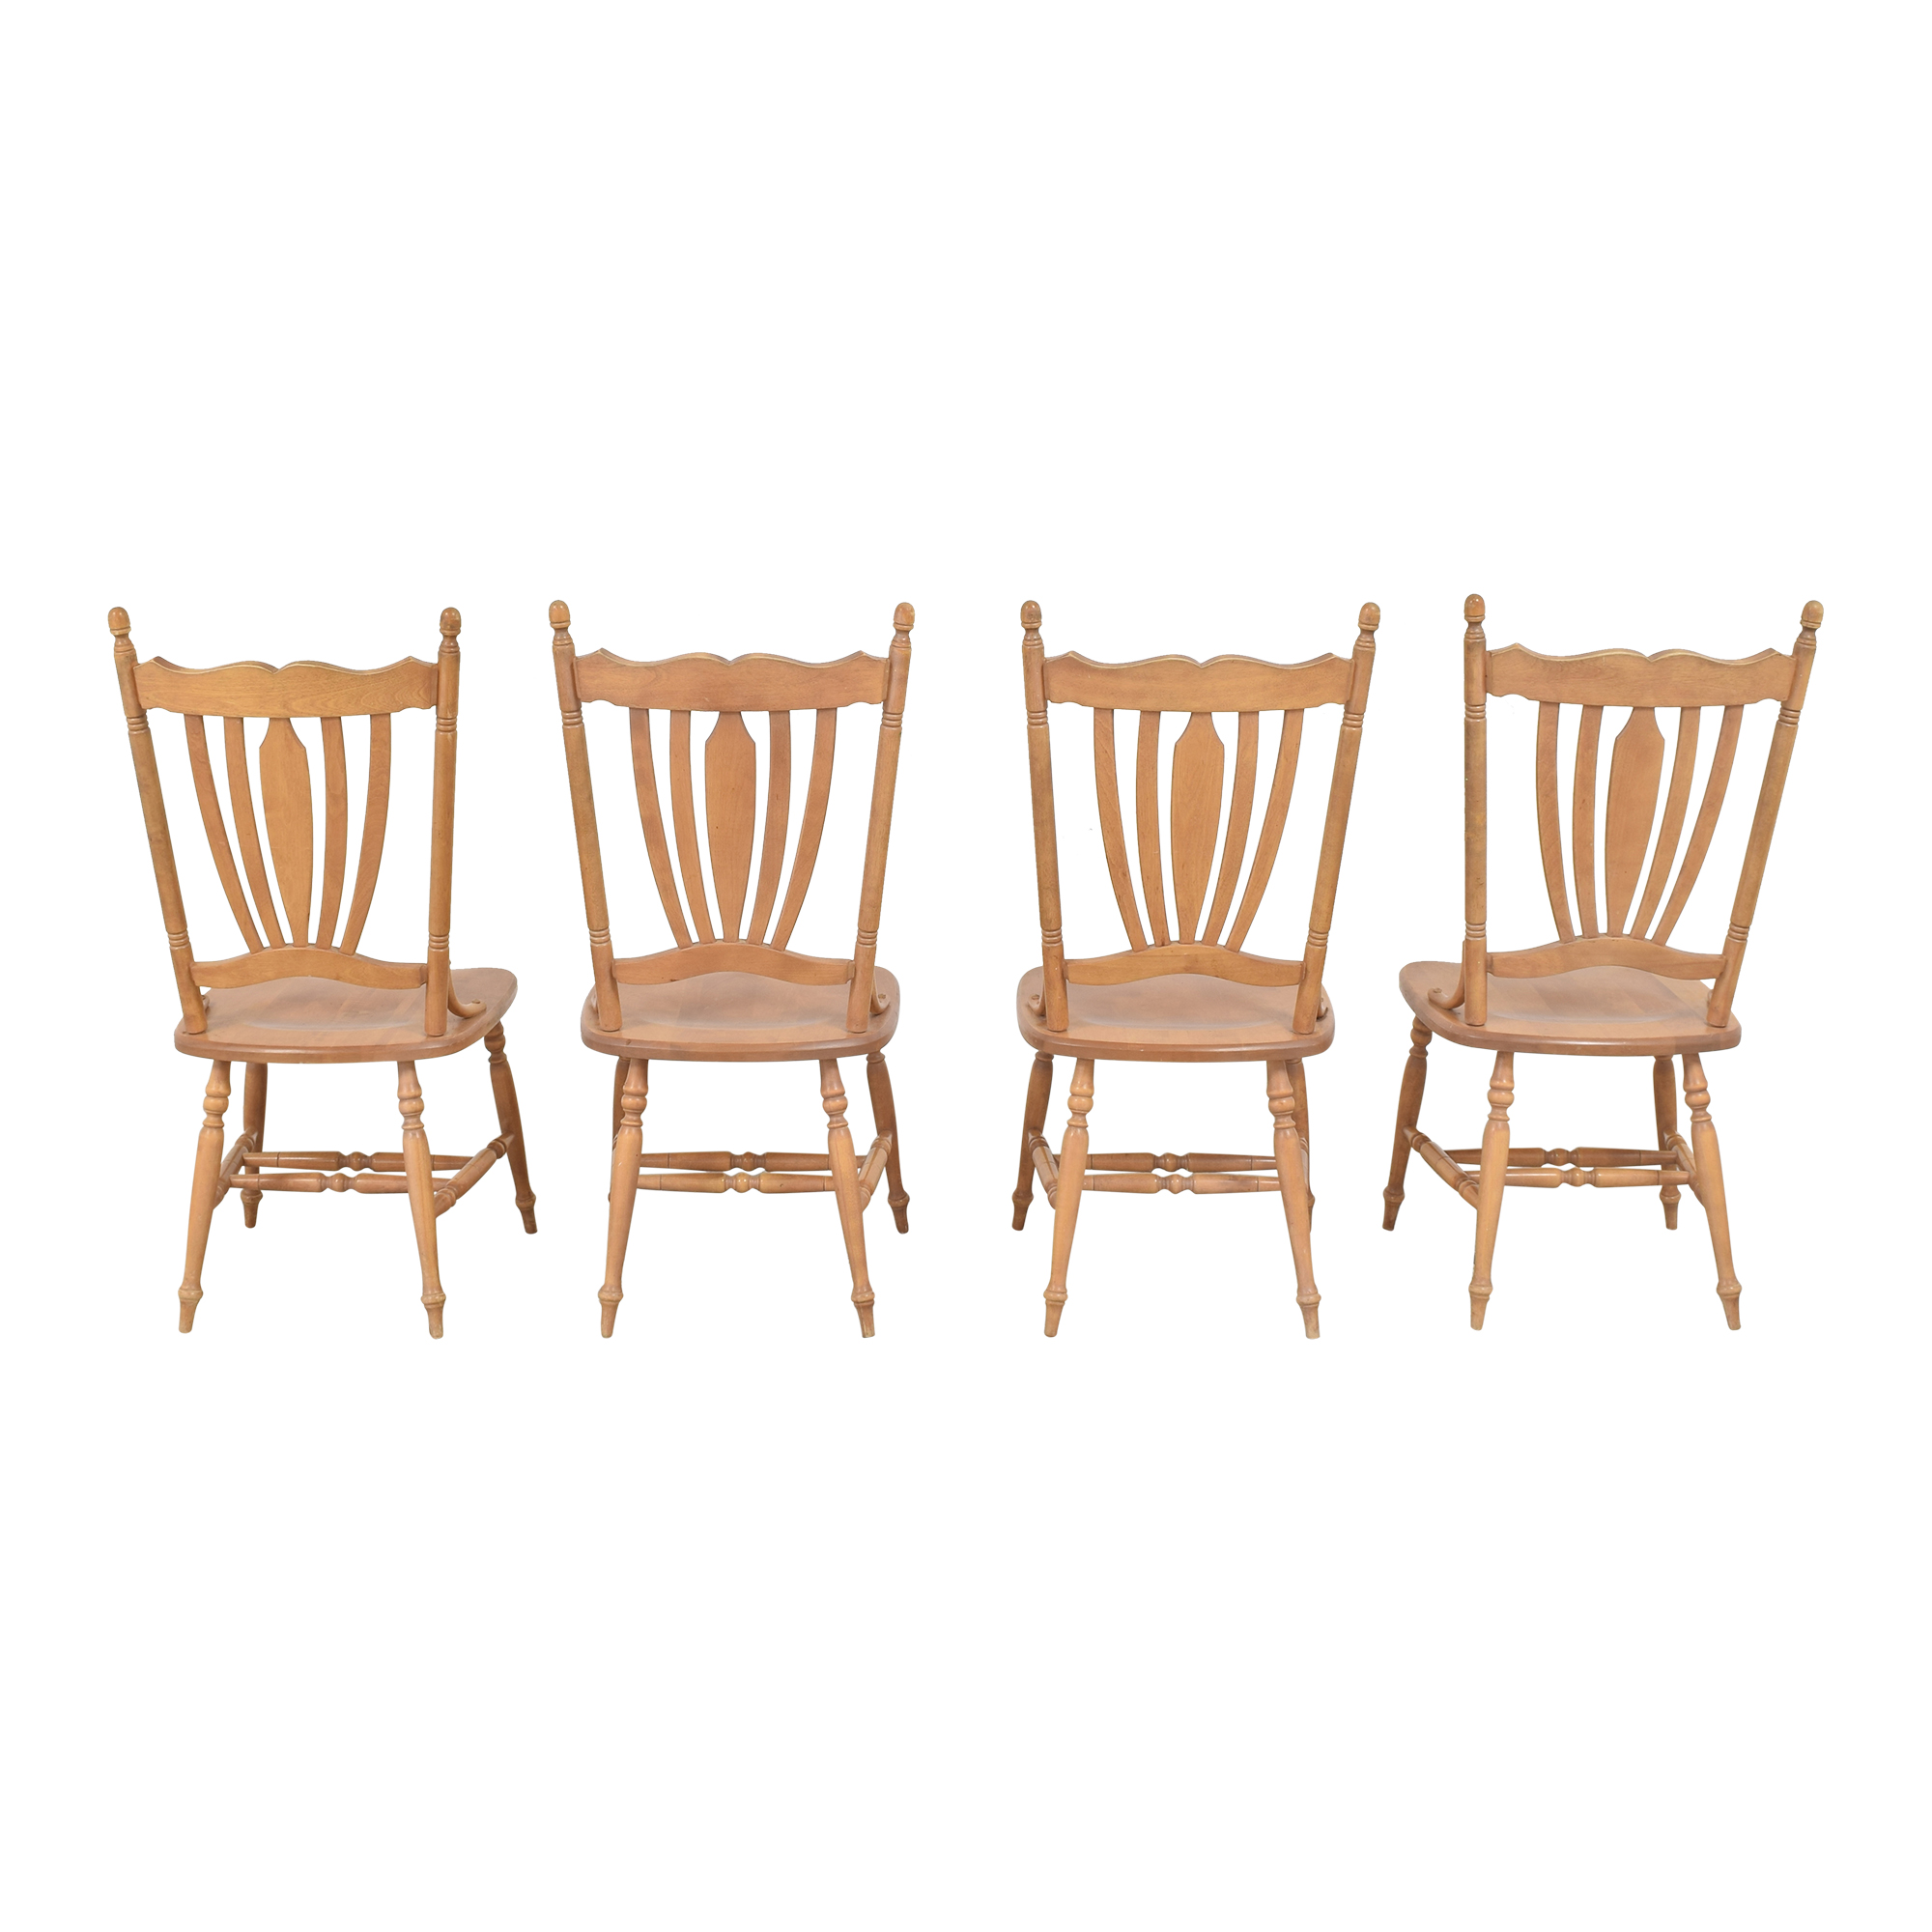 Canadel Canadel Rustic Dining Chairs nj